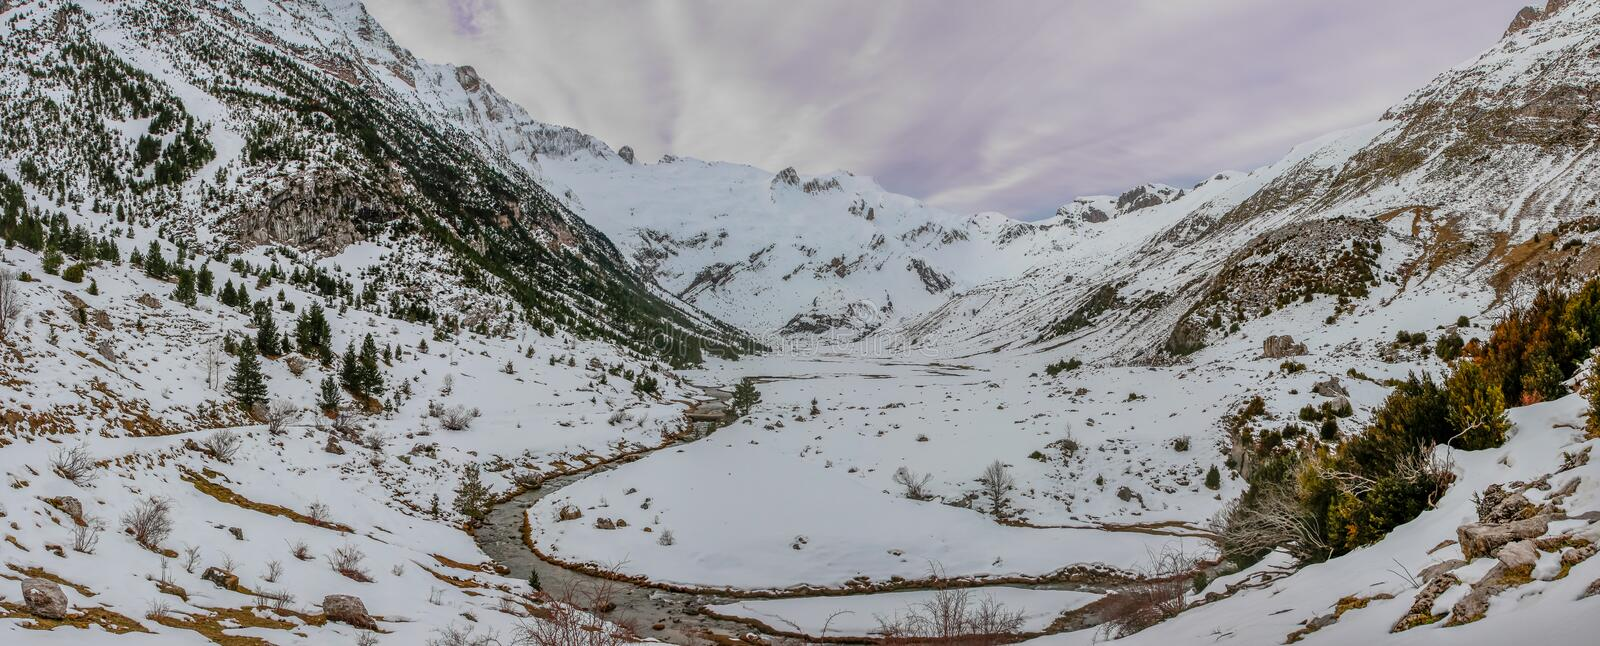 Panoramic of the Otal Valley Huesca snowy. Winter Nature Concept royalty free stock photo